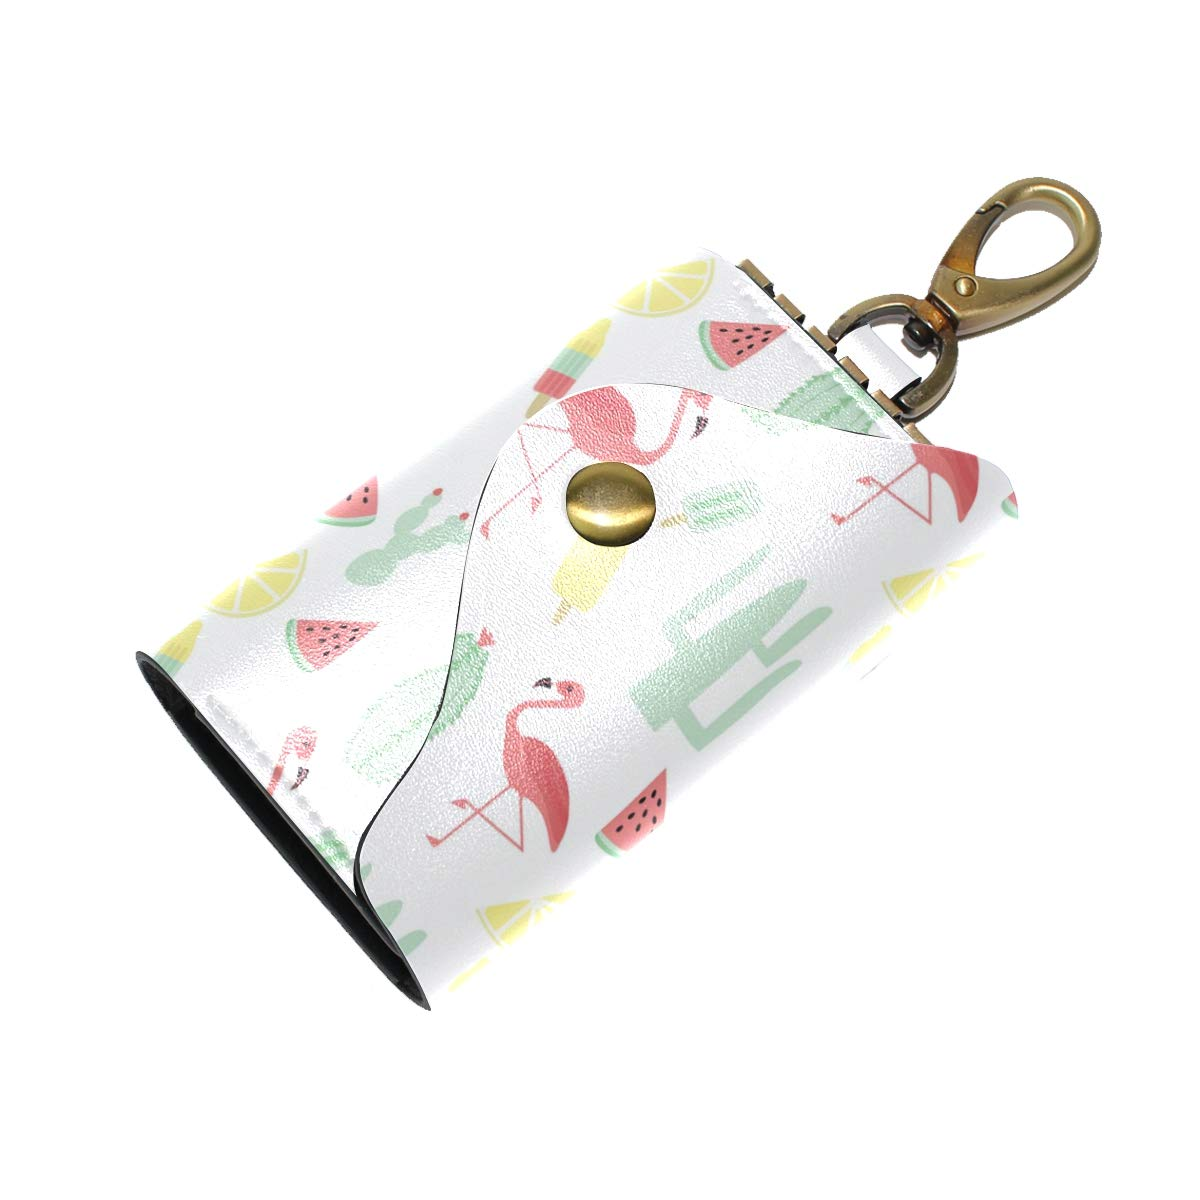 KEAKIA Pattern Flamingo Leather Key Case Wallets Tri-fold Key Holder Keychains with 6 Hooks 2 Slot Snap Closure for Men Women